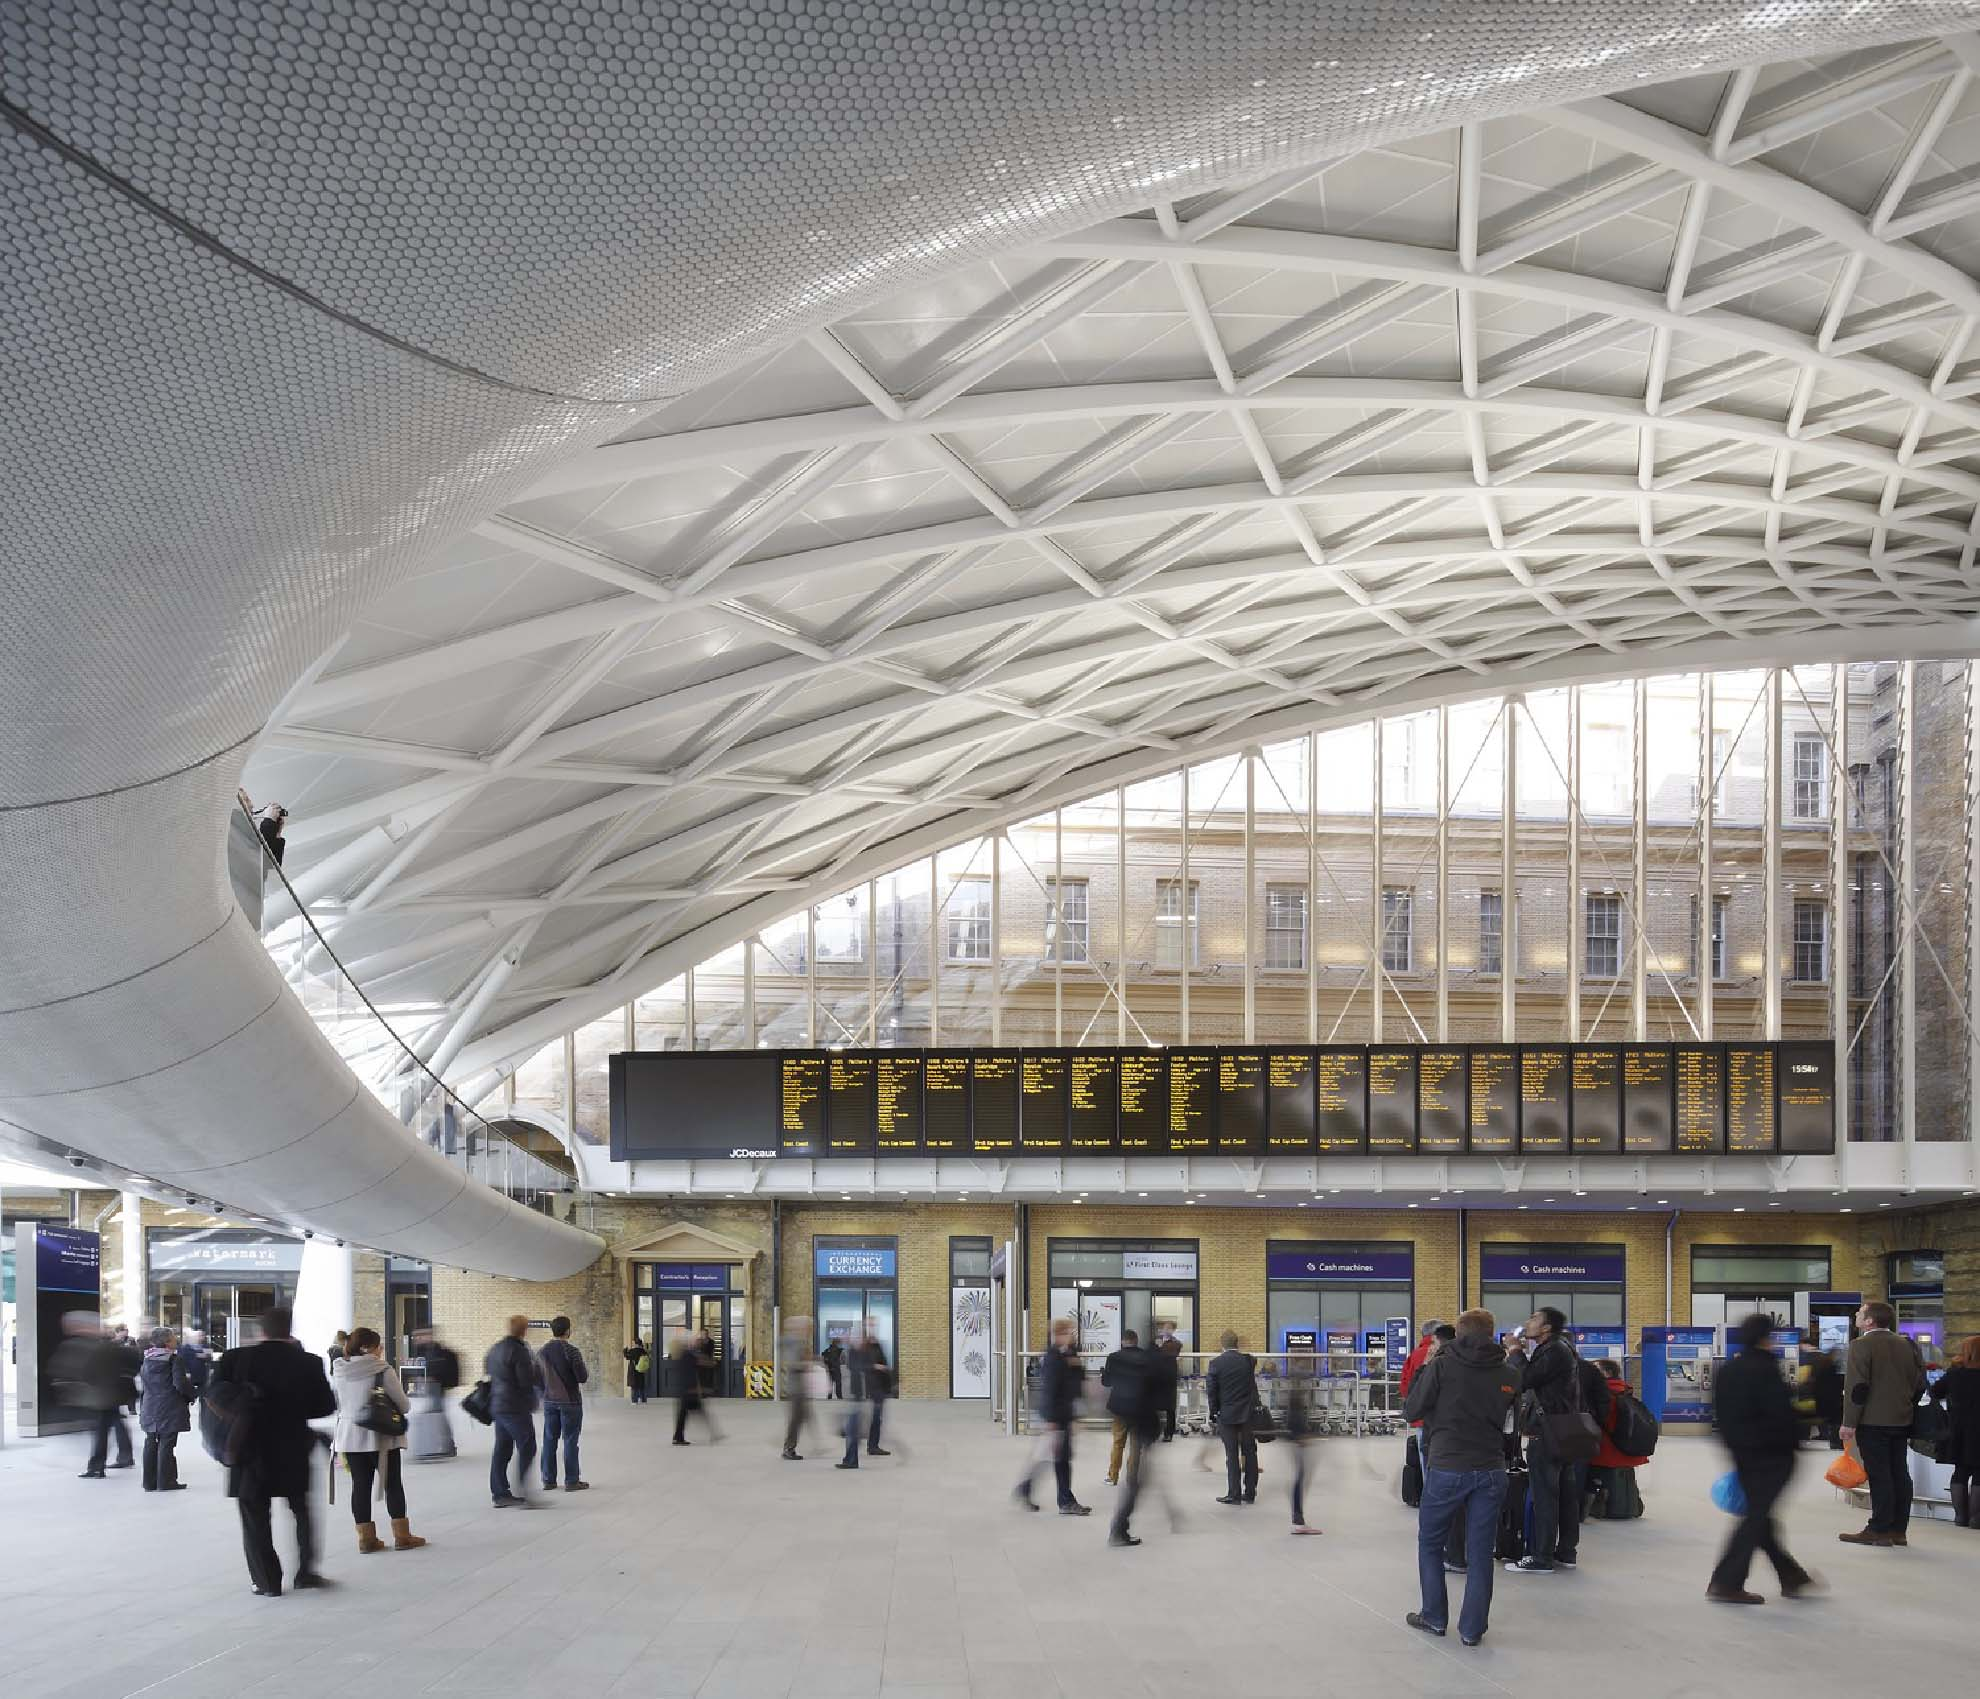 Transportation architecture: The refurbishment of King's Cross Station, London by John McAslan + Partners